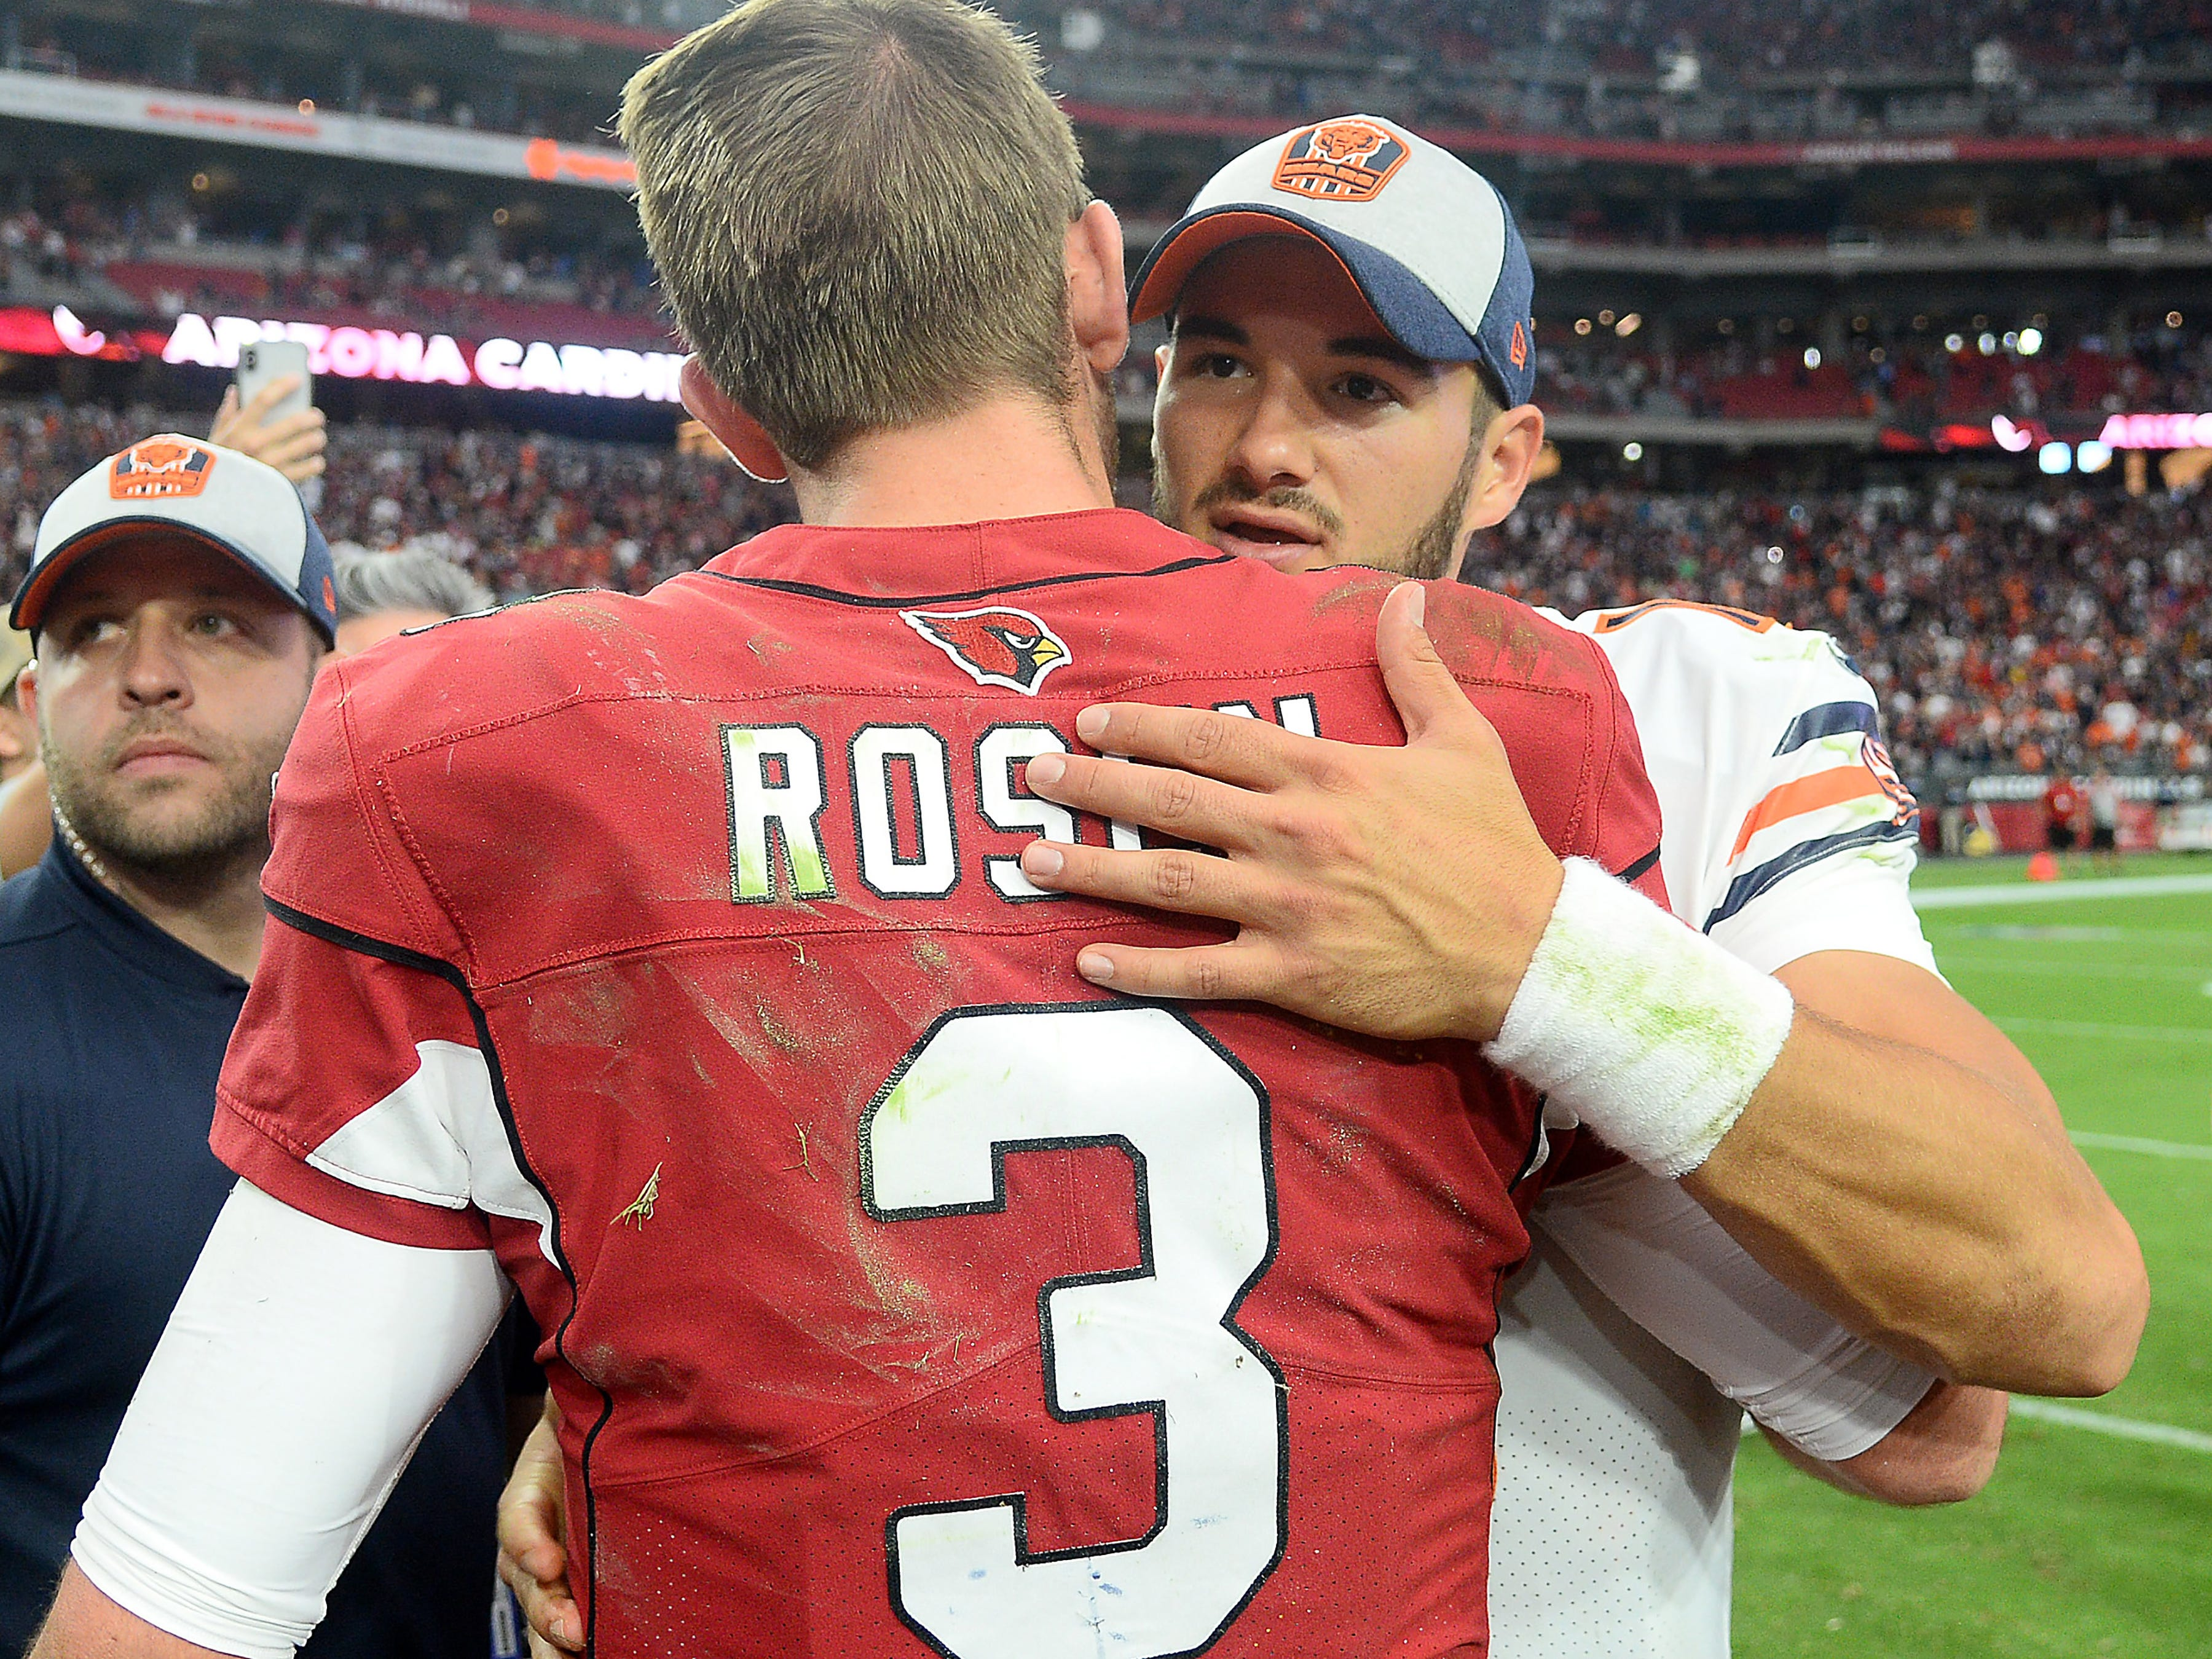 Sep 23, 2018; Glendale, AZ, USA; Arizona Cardinals quarterback Josh Rosen (3) and Chicago Bears quarterback Mitchell Trubisky (10) hug after the game at State Farm Stadium. Mandatory Credit: Joe Camporeale-USA TODAY Sports